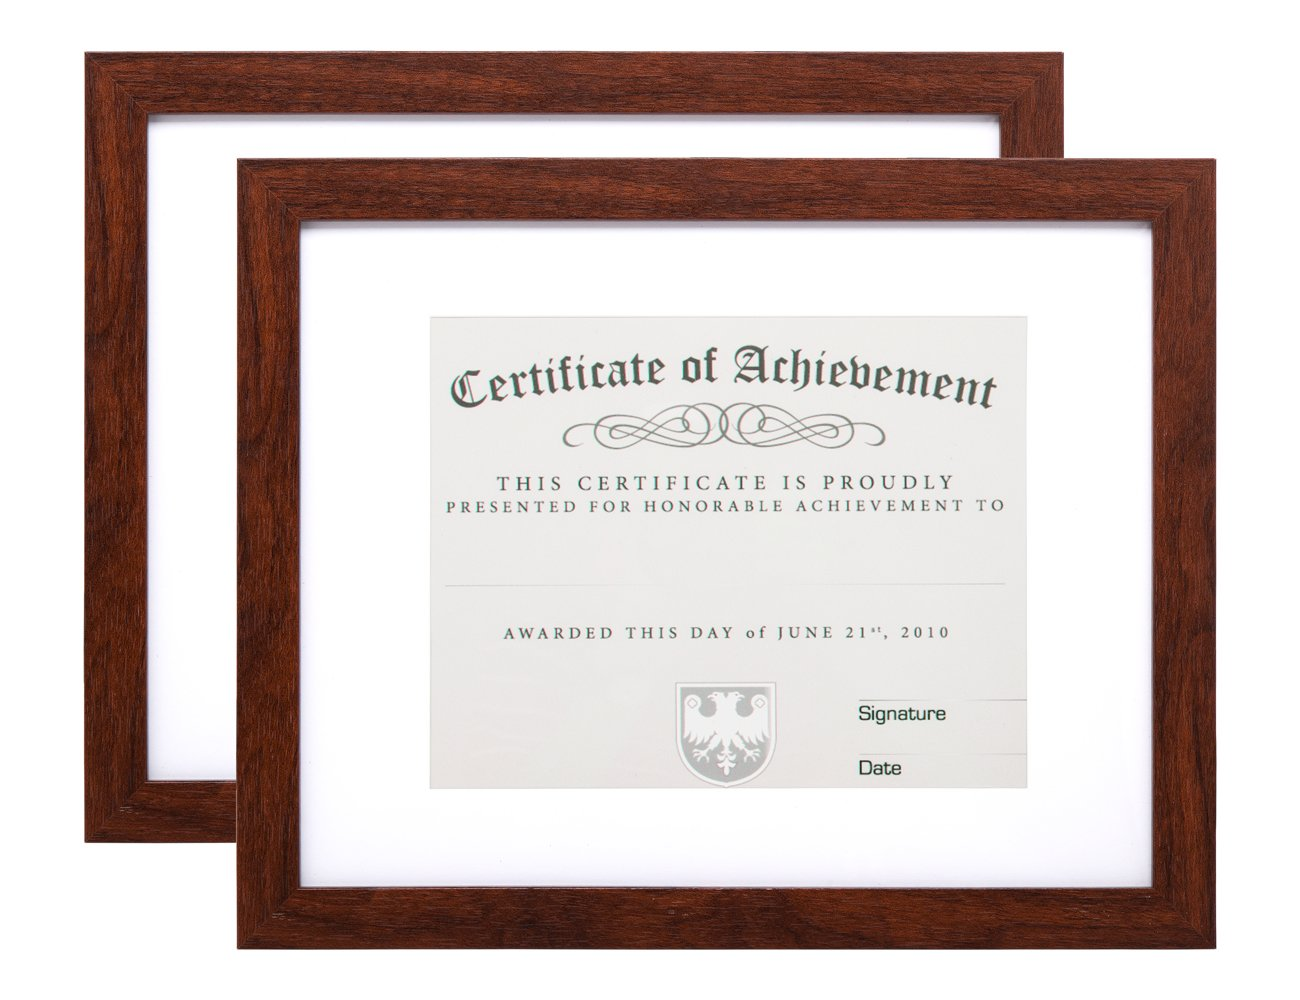 Memooq 2-Pack, Document Frame - Made for Documents Sized 8.5x11 Inch with Mat and 11x14 Inch without Mat Brown, College diploma frames